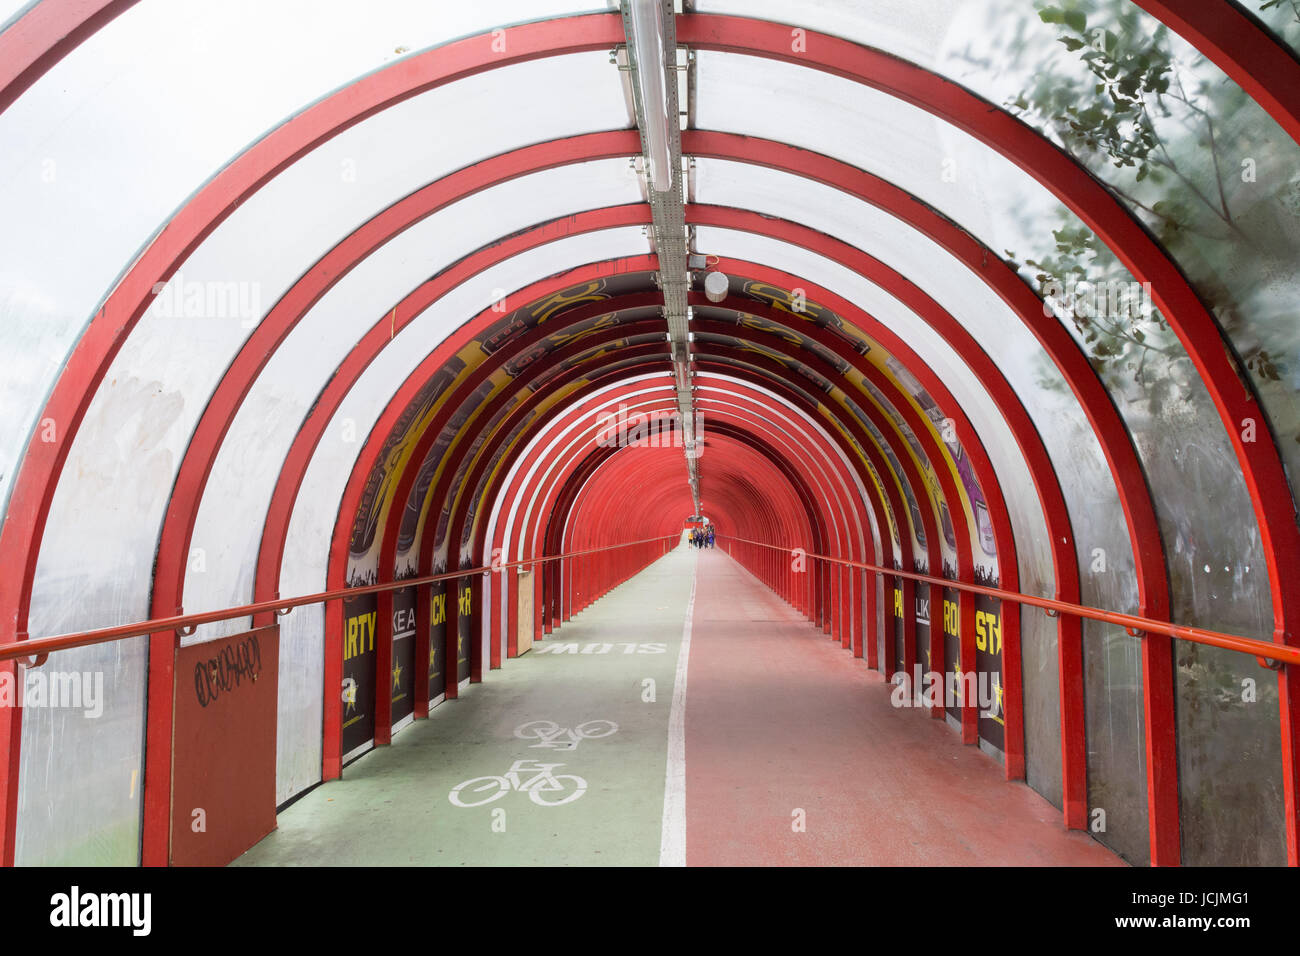 Glasgow SECC elevated covered pedestrian walkway and cycle lane, Glasgow, Scotland, UK Stock Photo